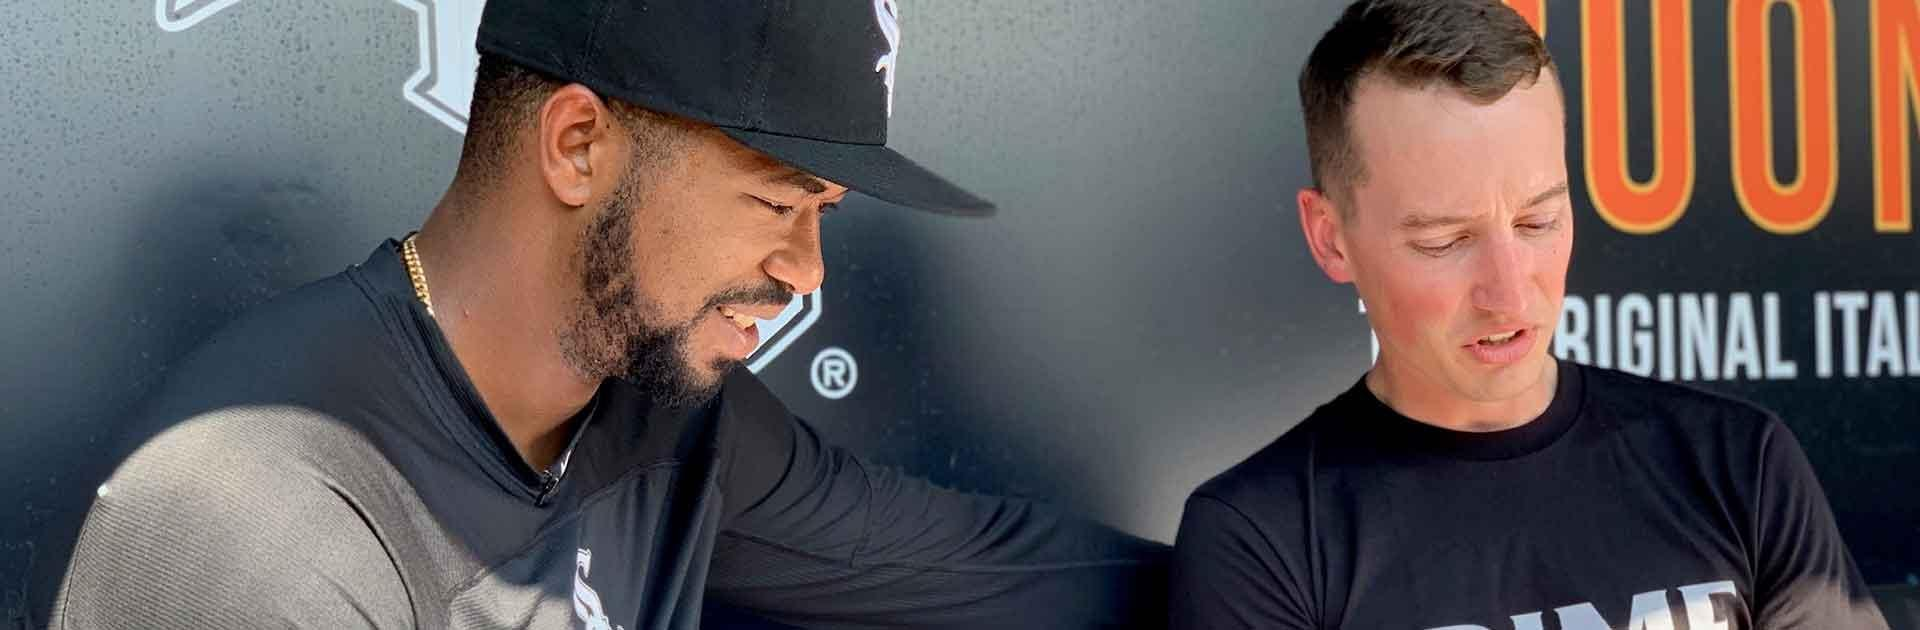 Eloy enjoying looking at his pro prime  bat design